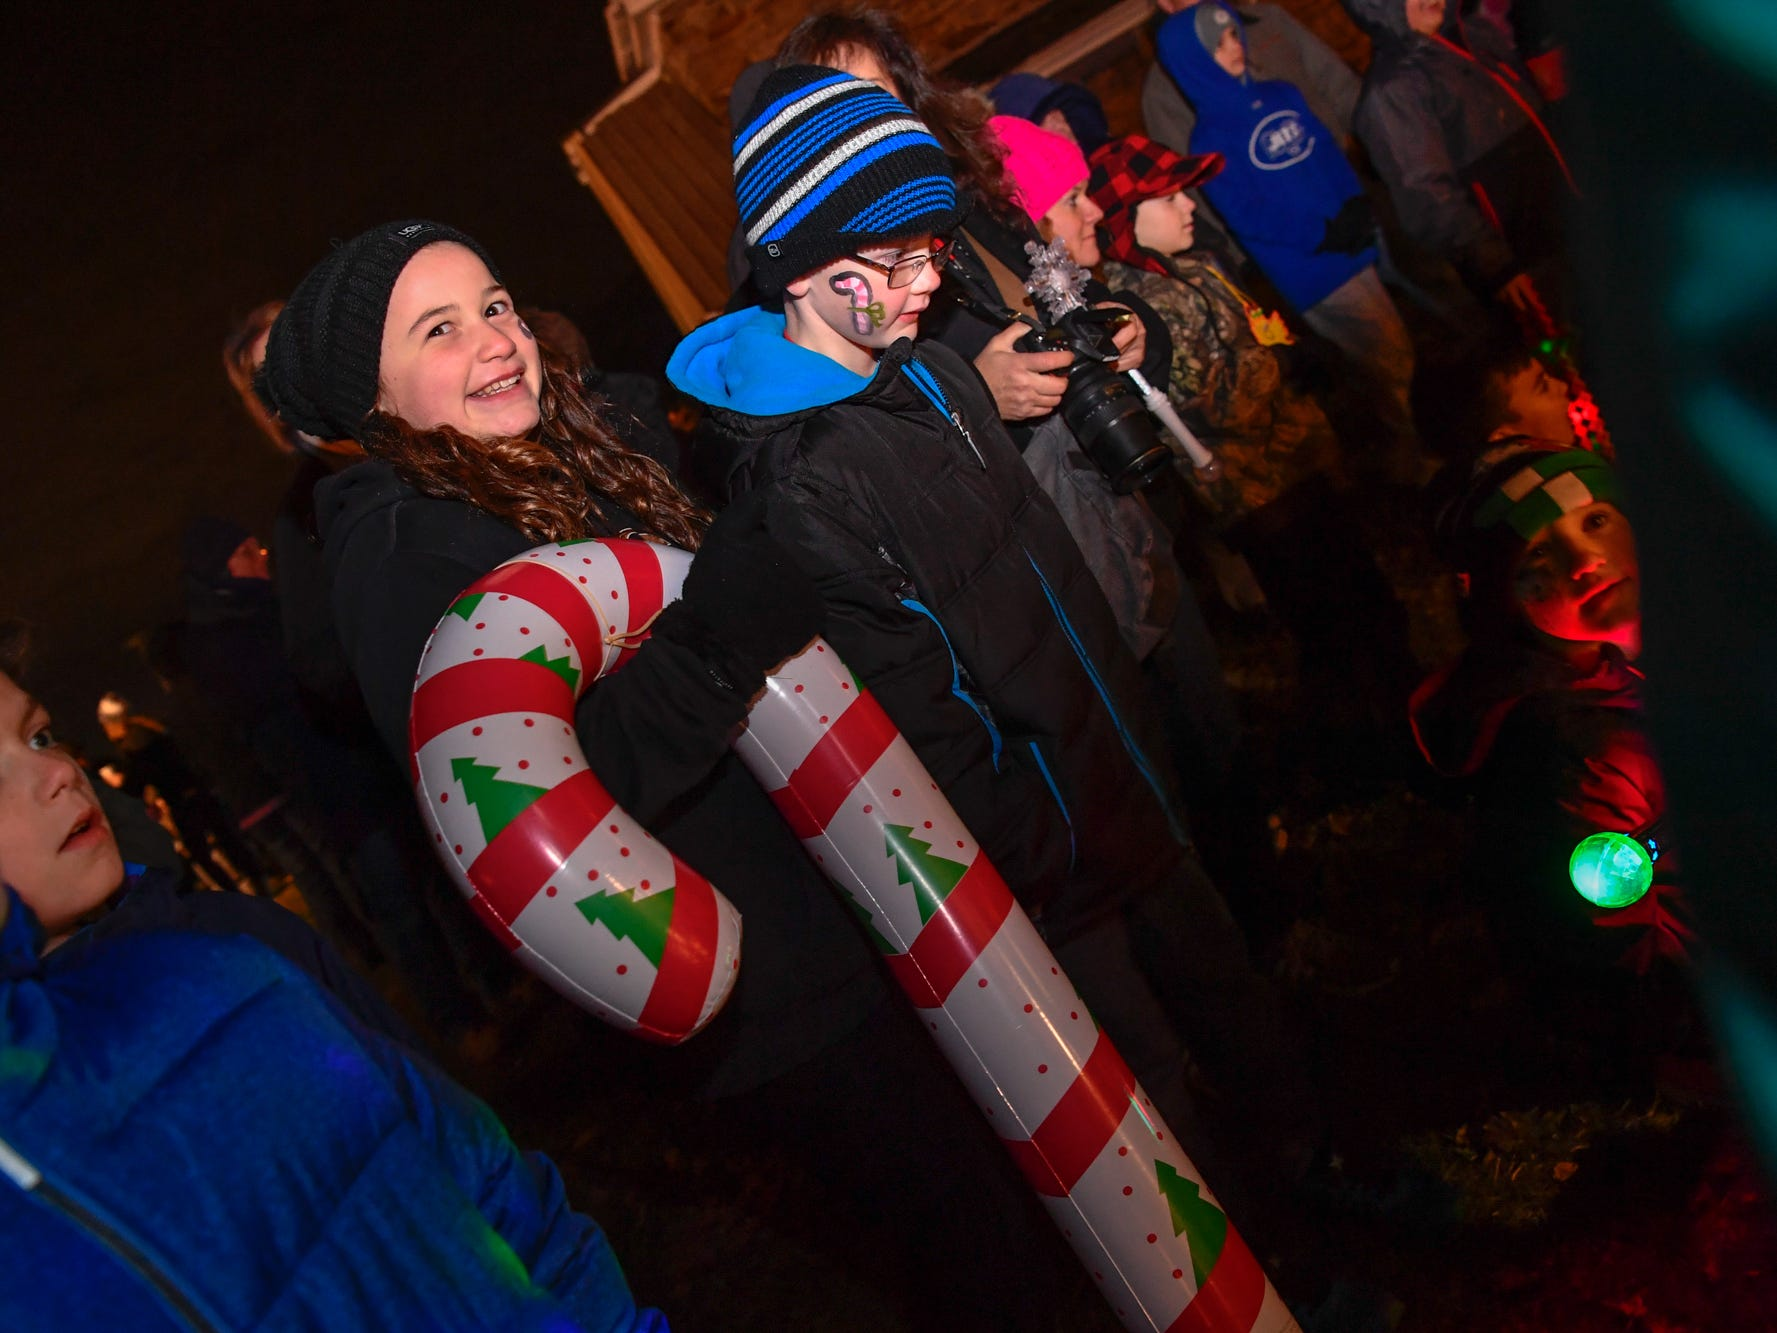 Hundreds attend the 3rd annual Christmas tree lighting in Spring Grove, Thursday, November 29, 2018. 